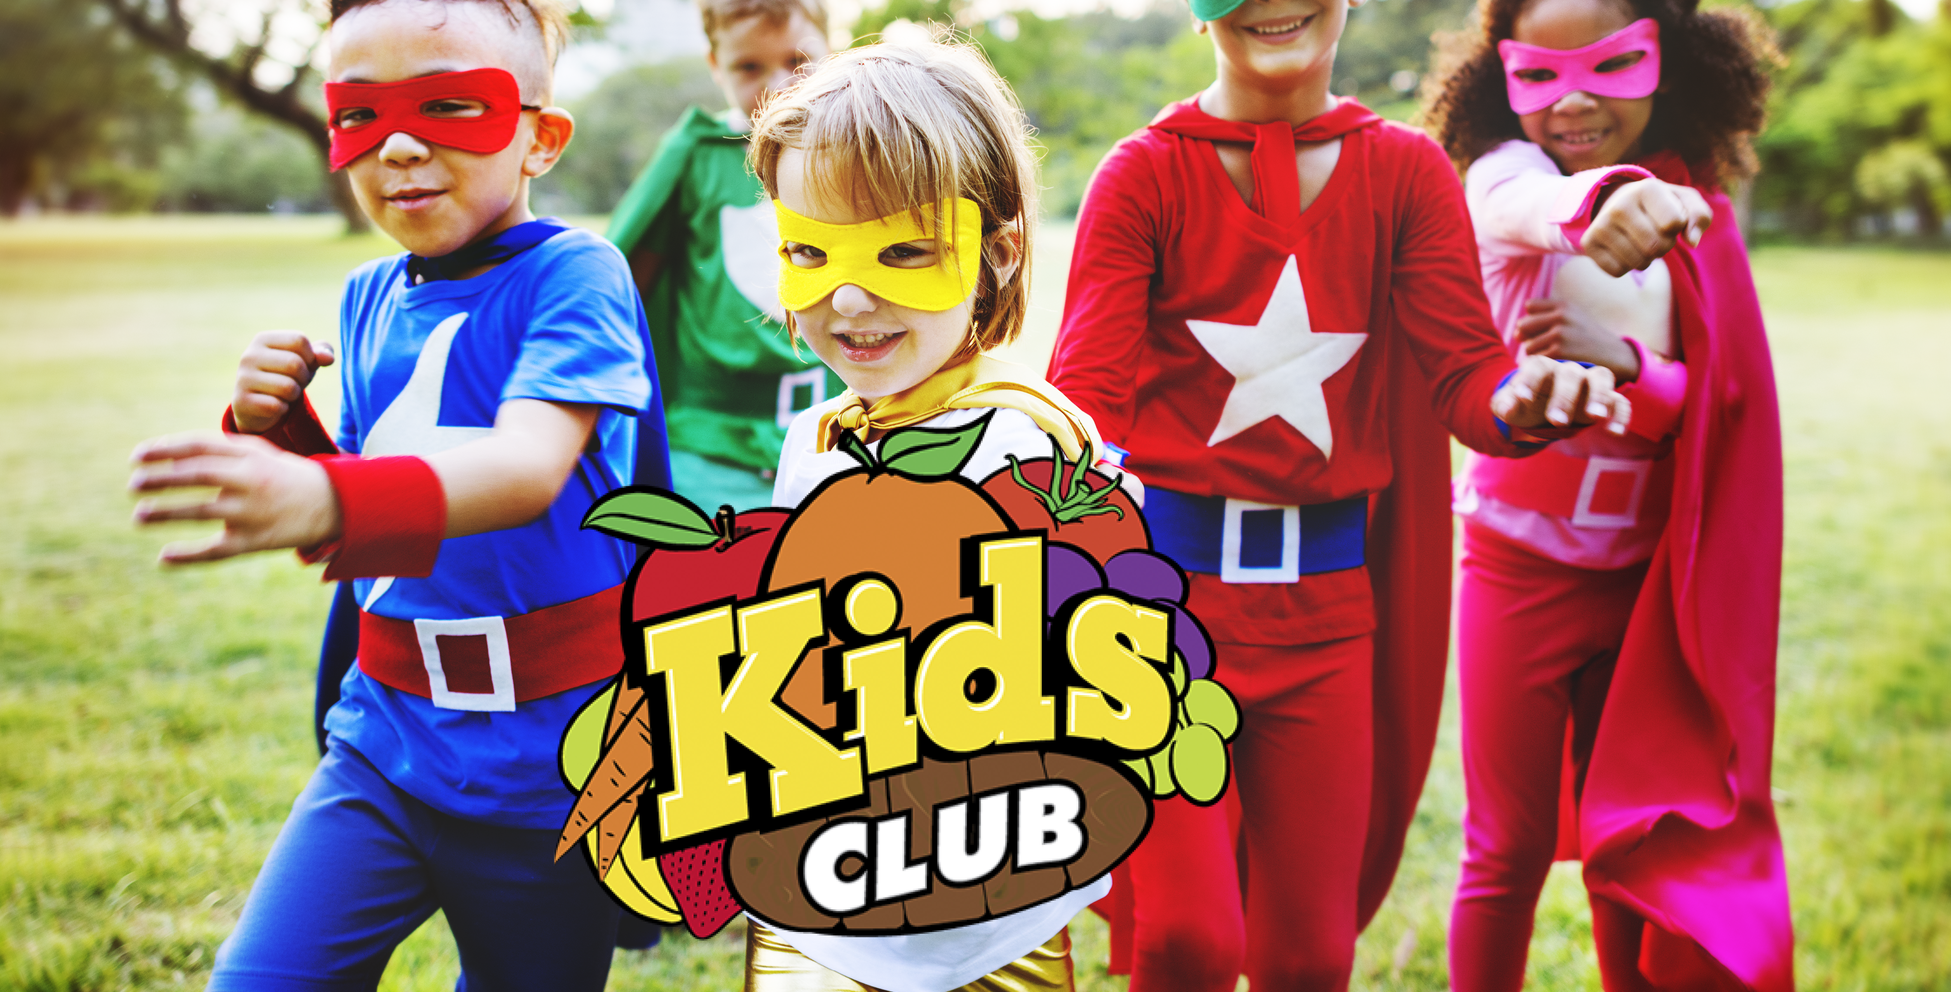 GET THE CRAZY FRESH KIDS CLUB IN YOUR STORE! -